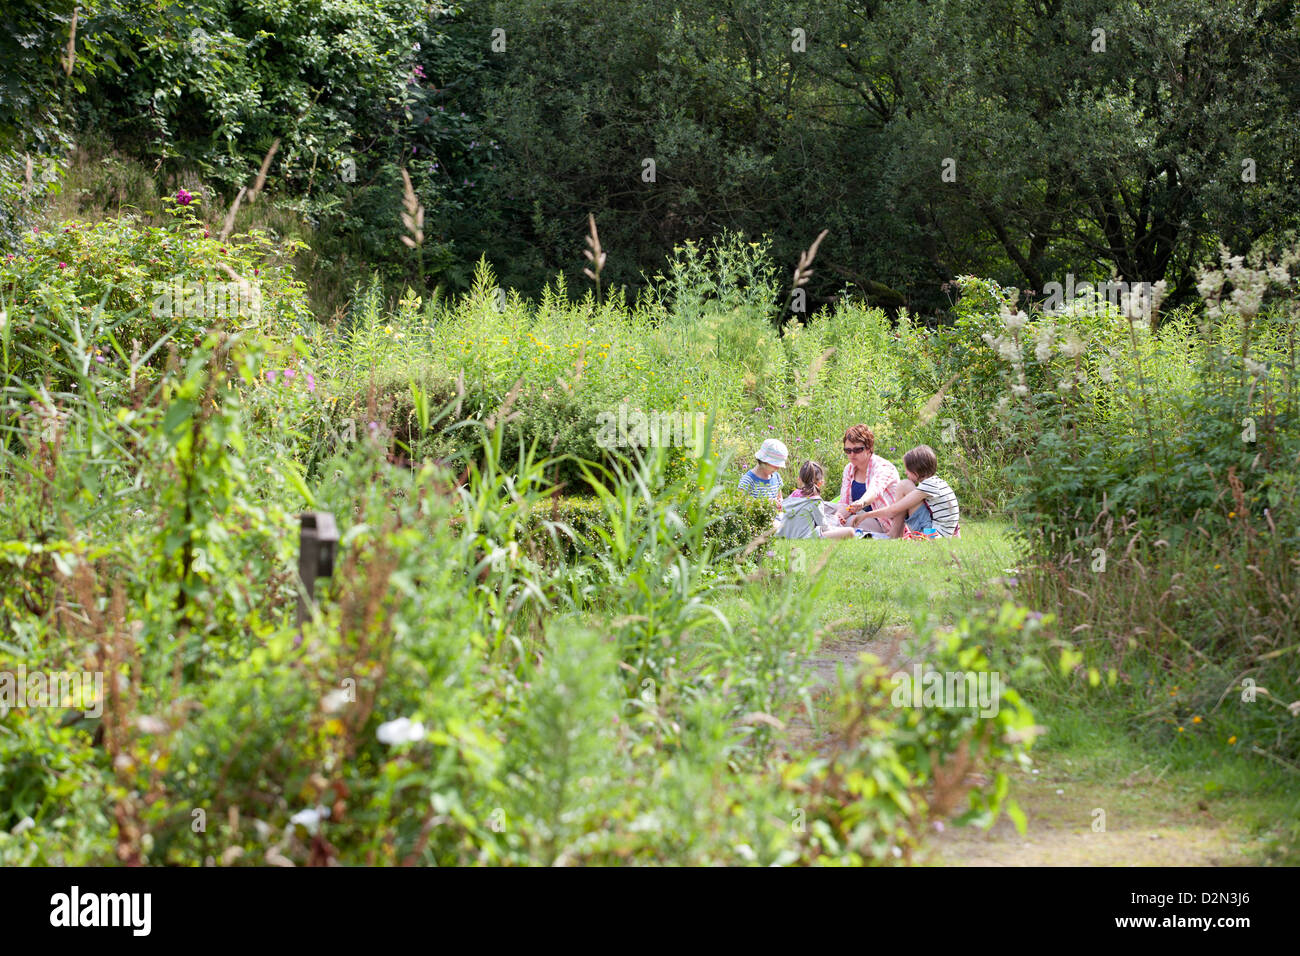 August 2012 Brownbhill Countryside Centre - Pix in Garden - Stock Image